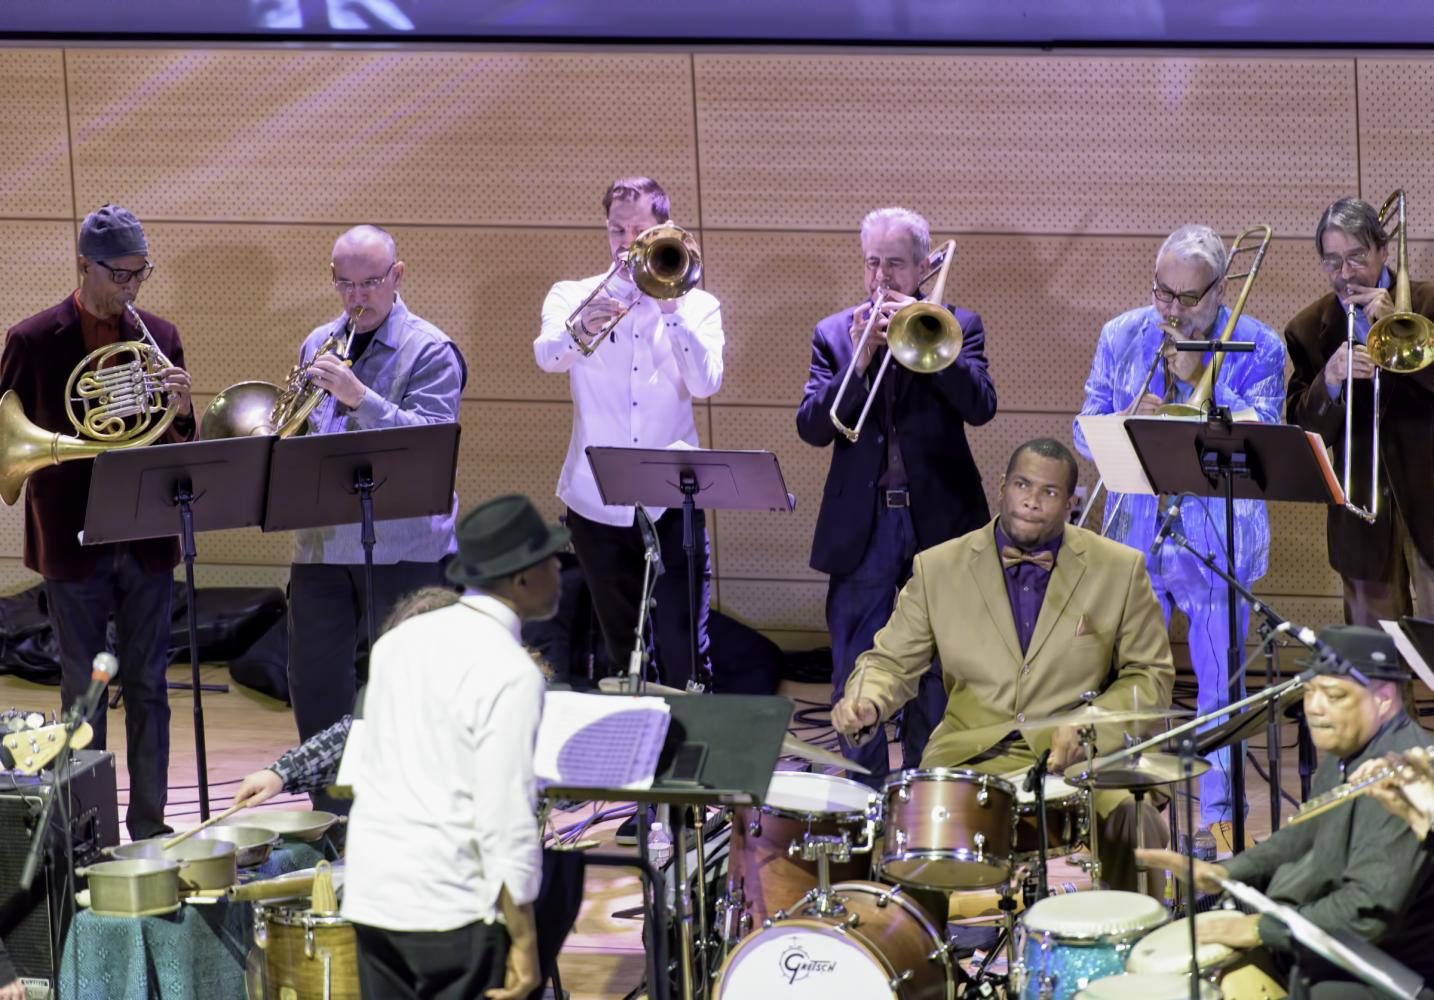 Vincent Chancey, John Clark, Dick Griffin, Joseph Daley, Steve Swell, Brett Sroka, Avram Fefer, Baba Donn Babatunde, Kahlil Bell and Andrew Drury with Craig Harris and Breathe at the NYC Winter Jazzfest 2017